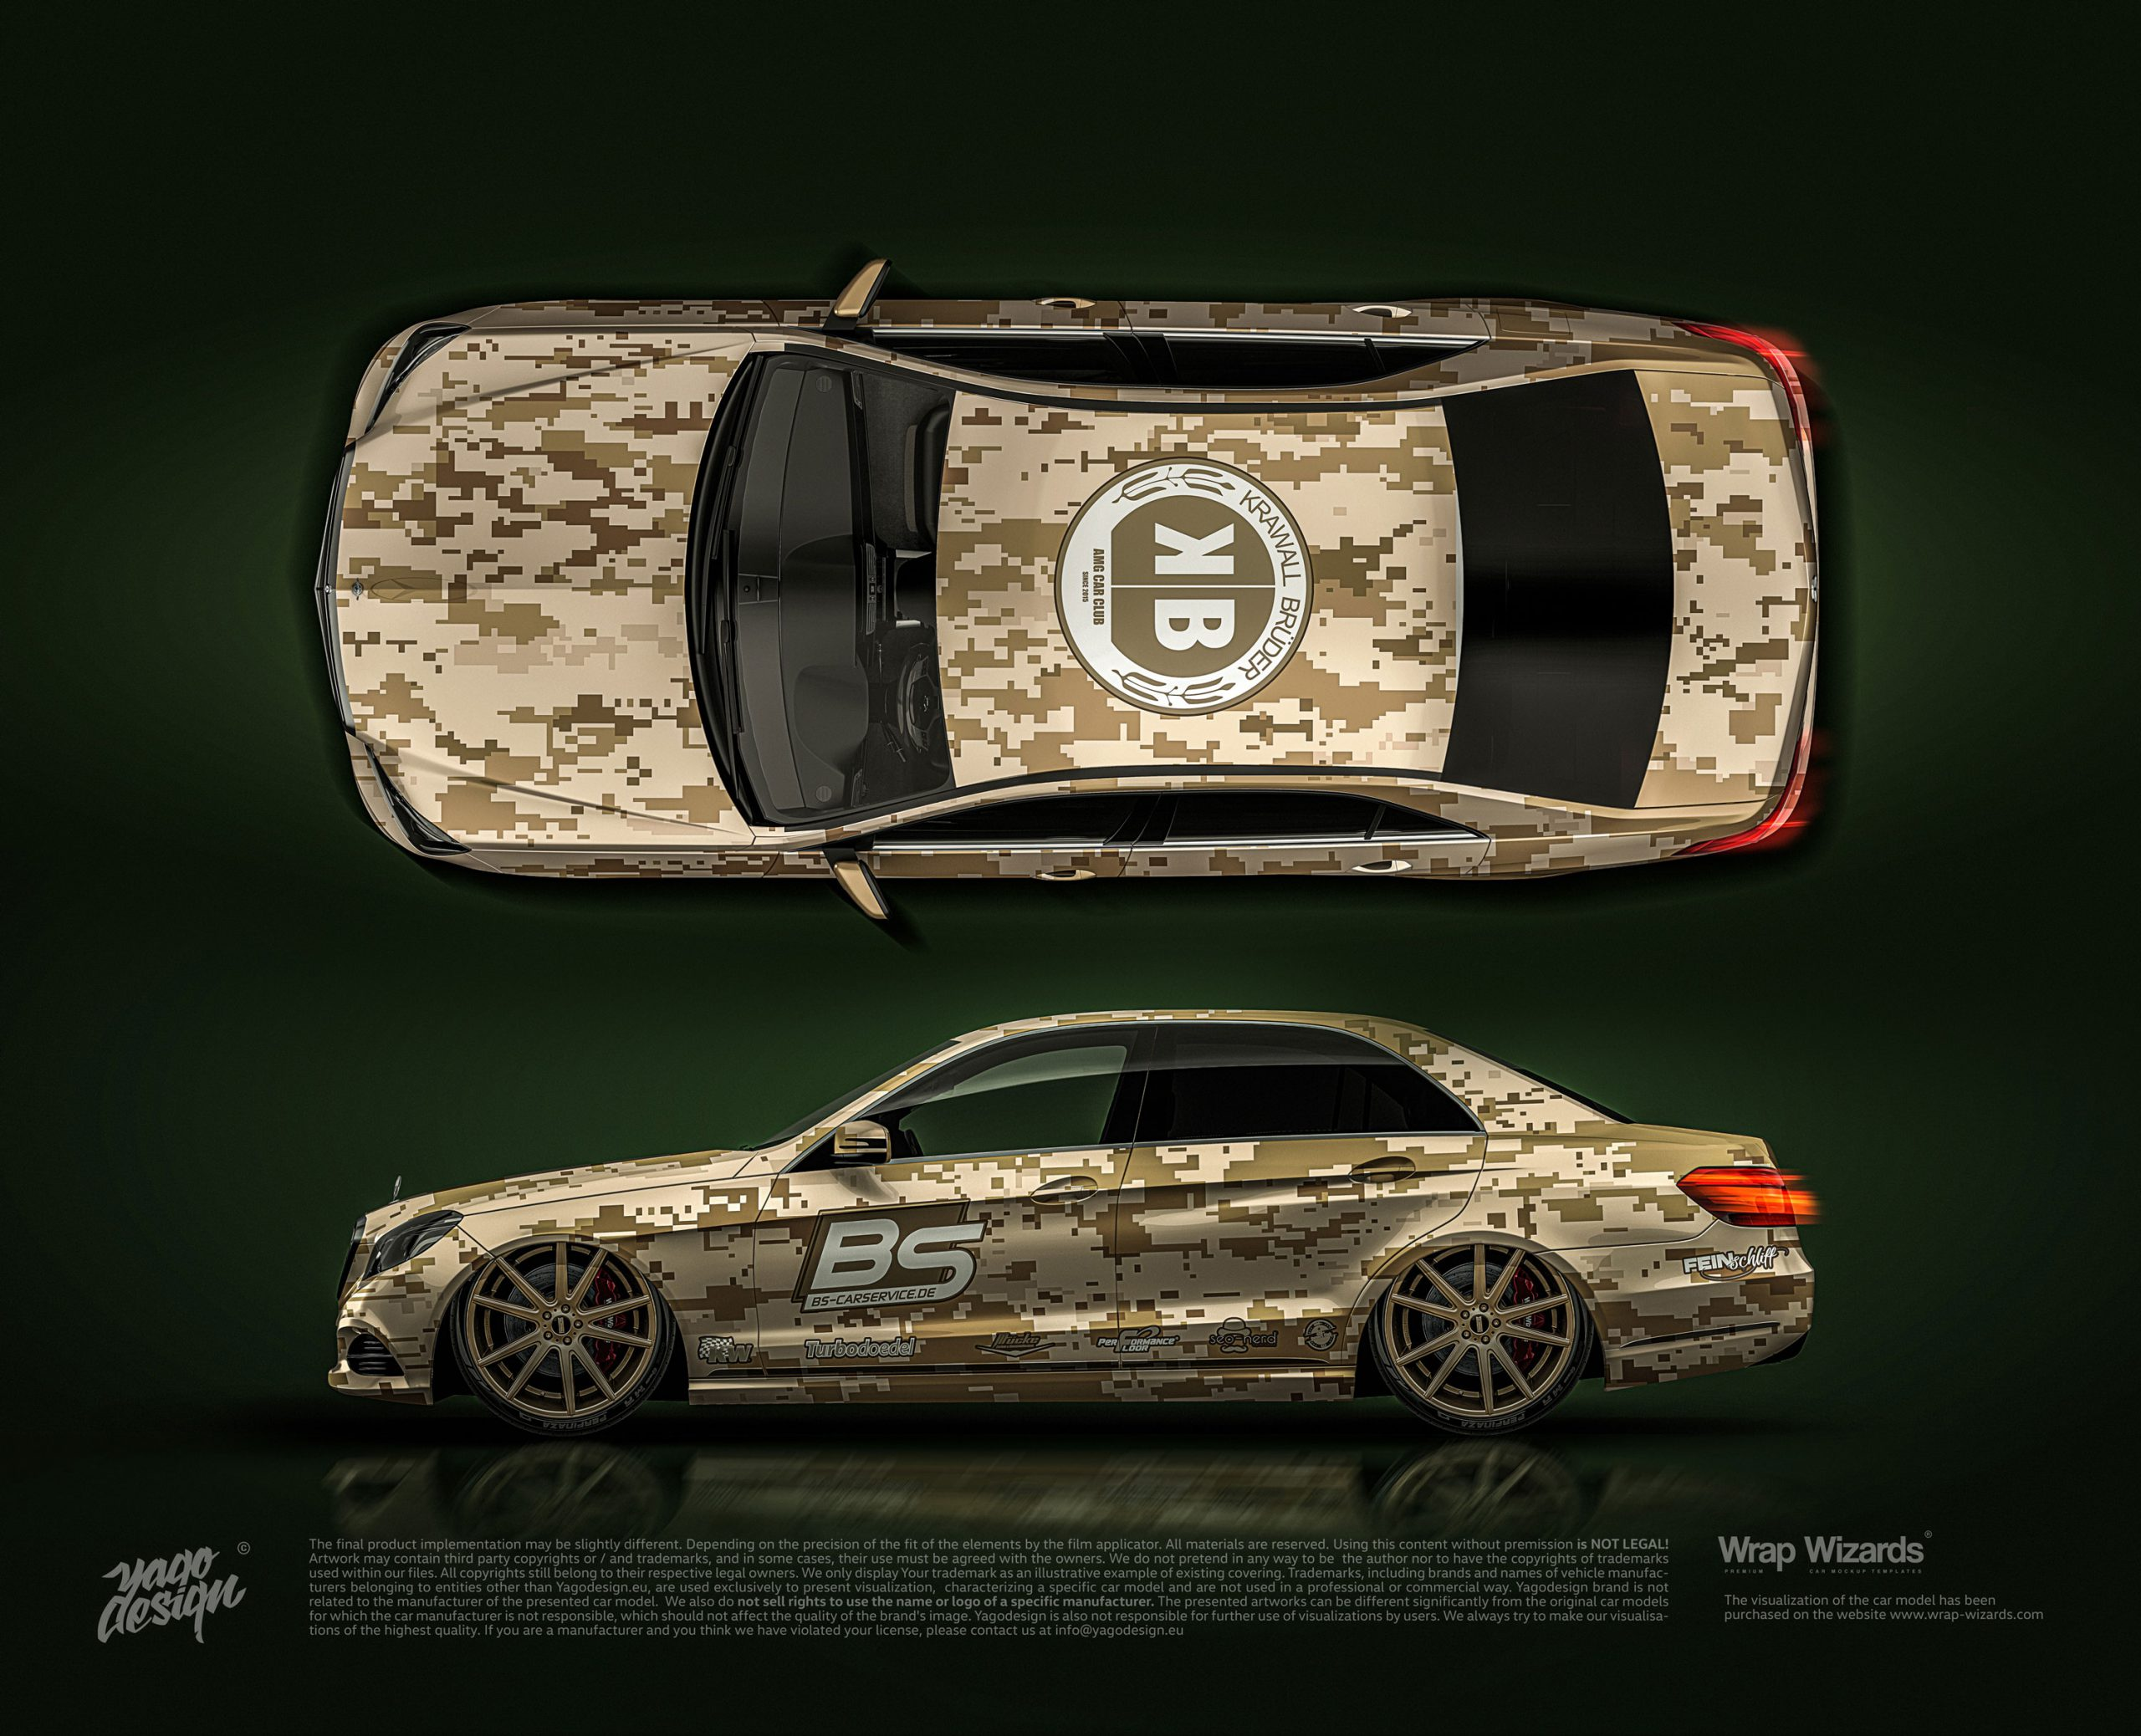 Mercedes-Benz-E-class-2014-by-Yagodesign-2020—side-and-top-view-3500px